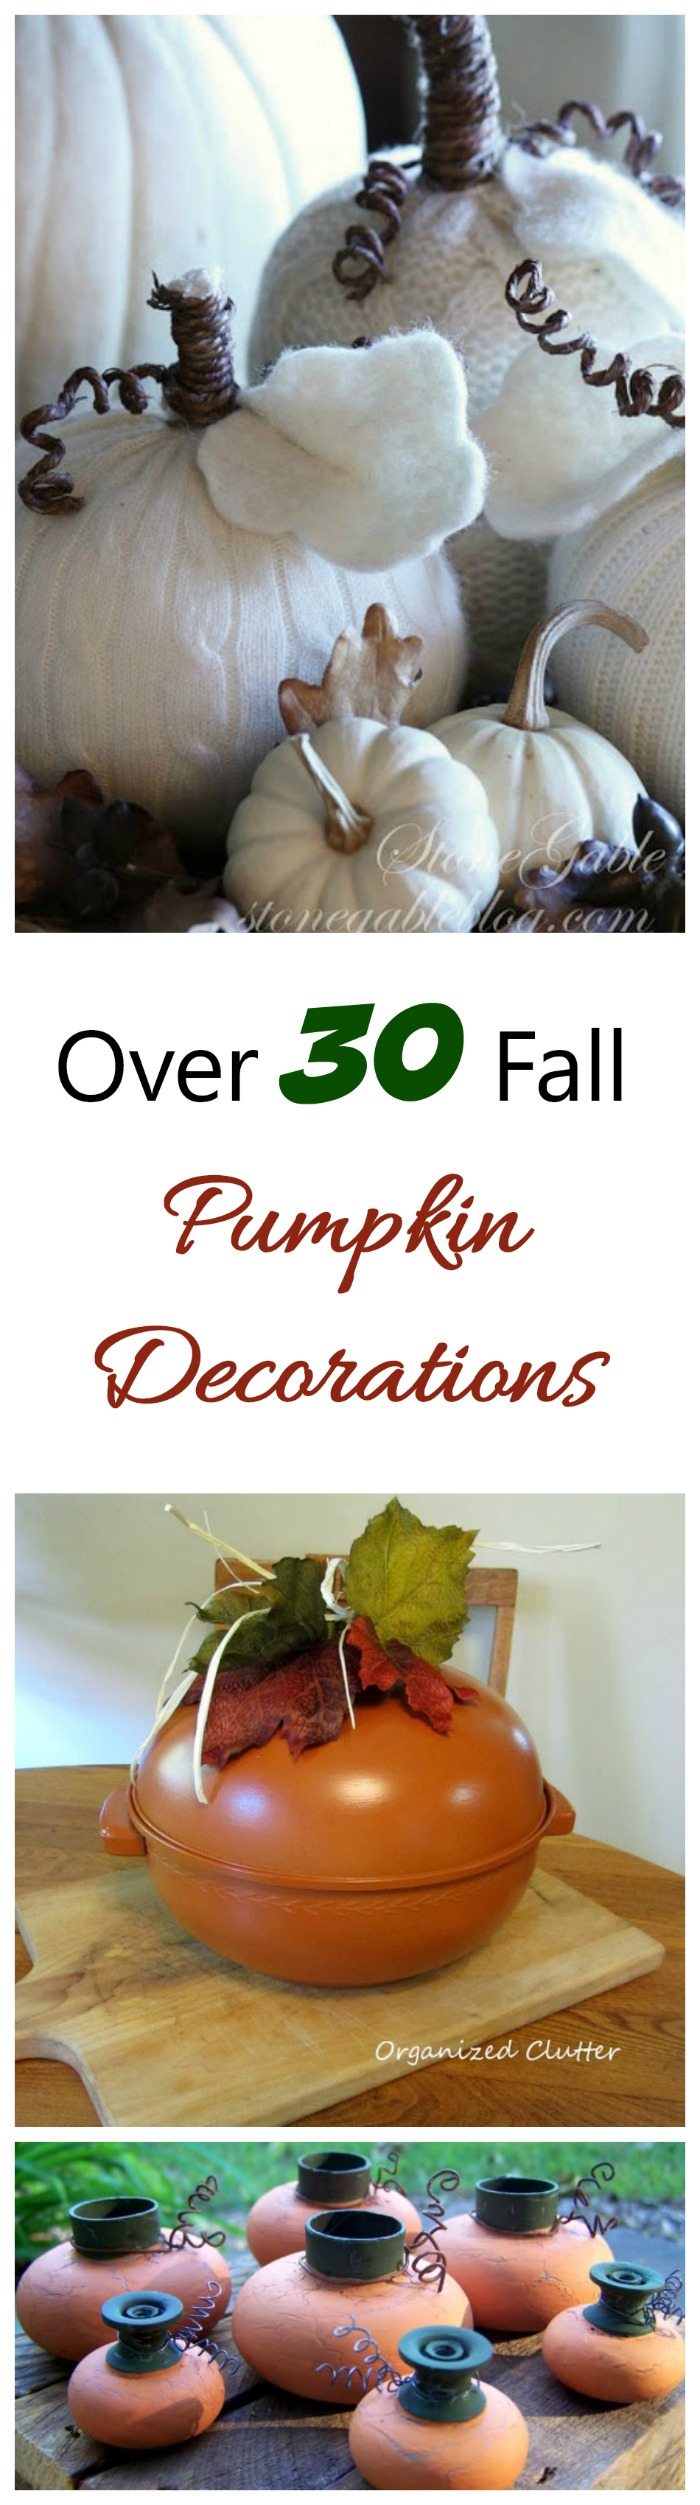 It's pumpkin season. Decorate in style with one of these 30+ pumpkin decor projects #pumpkindiy